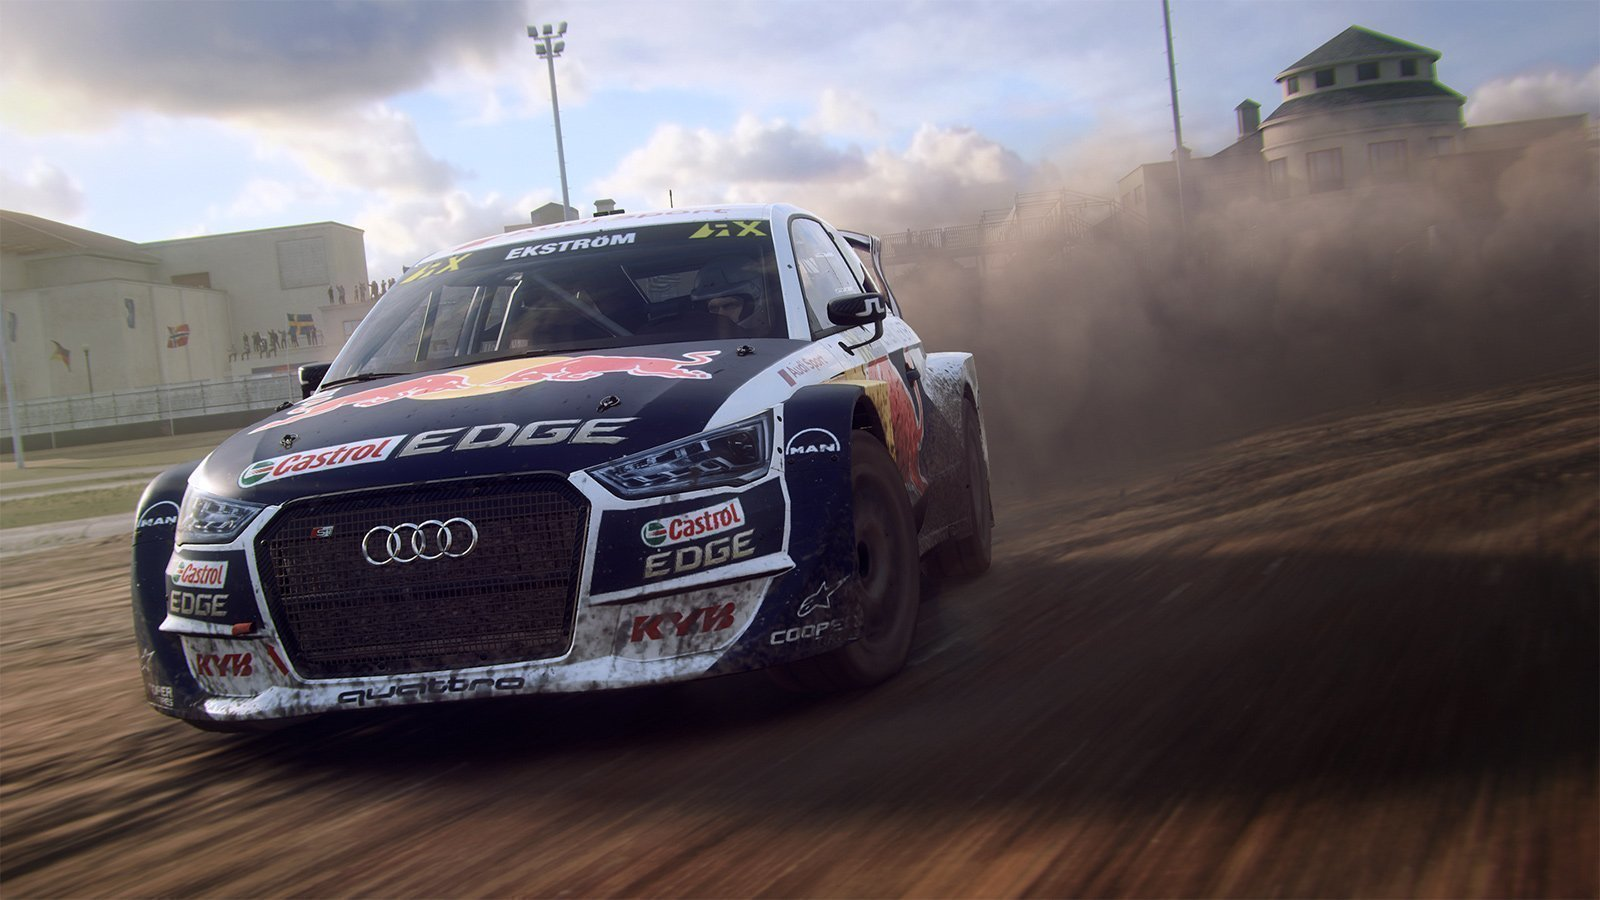 Петиция · #NoVRnoBuy: Codemasters, please add VR support for Dirt Rally 2.0 on PC and PS4 · Change.org